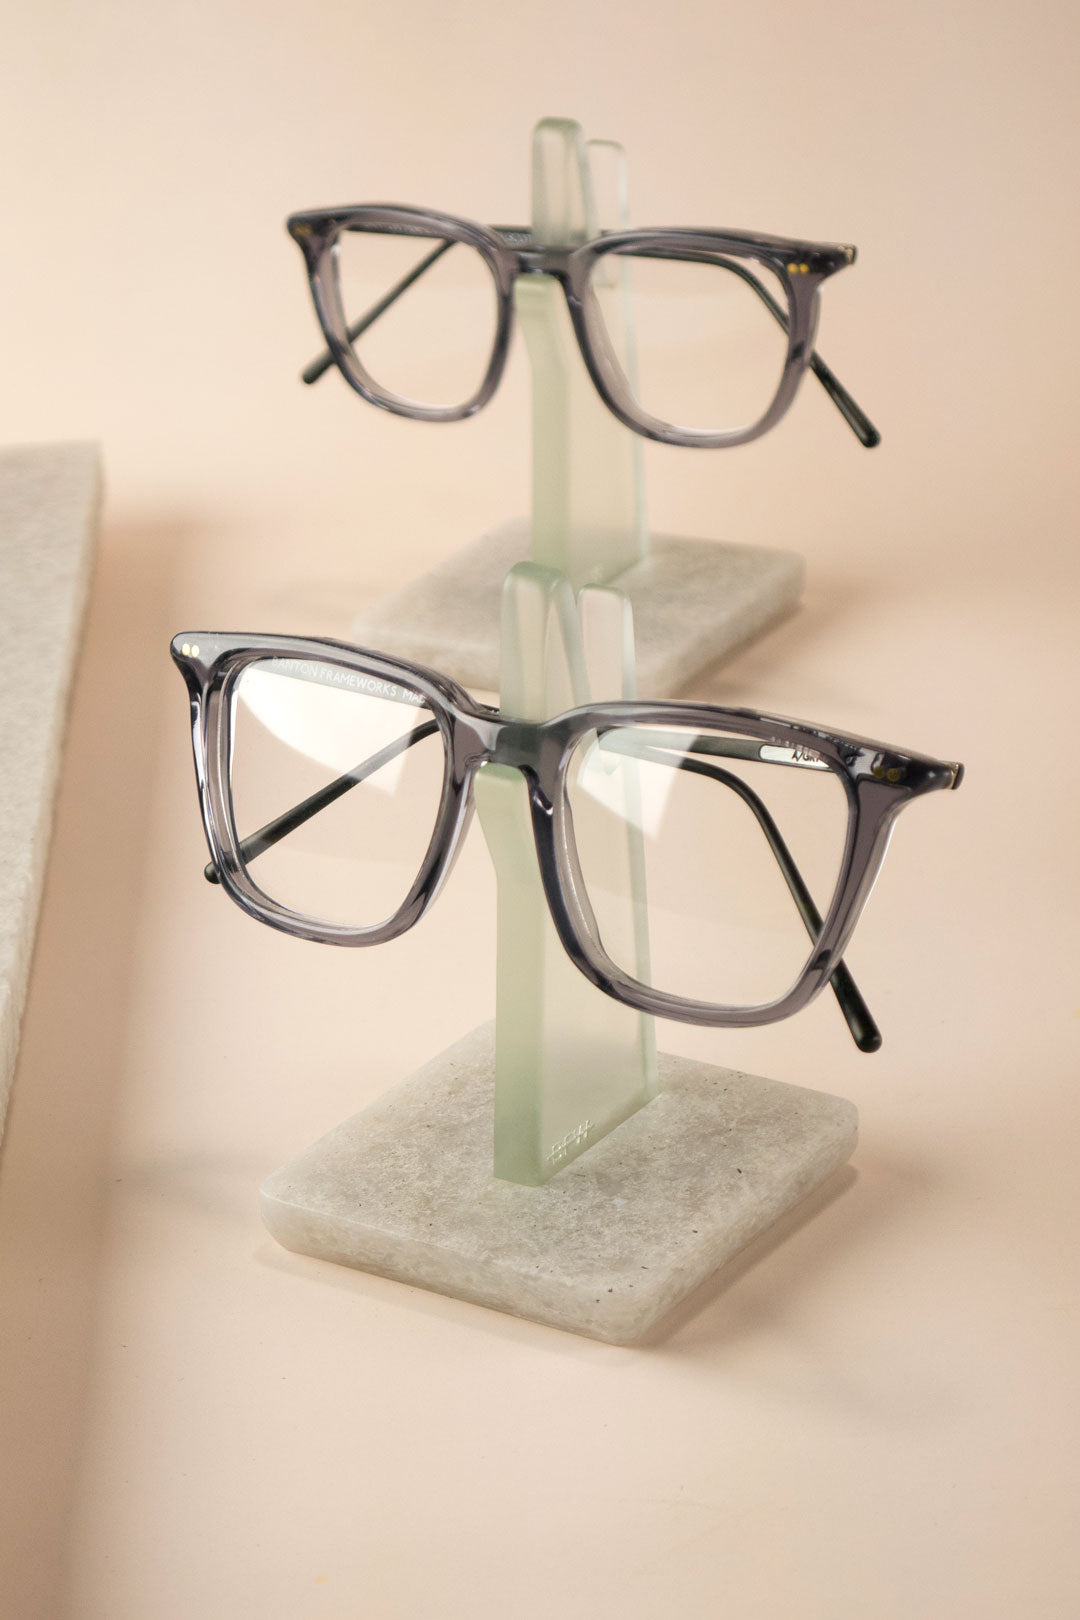 Grey glasses frames both placed on spectacle stands on pink background